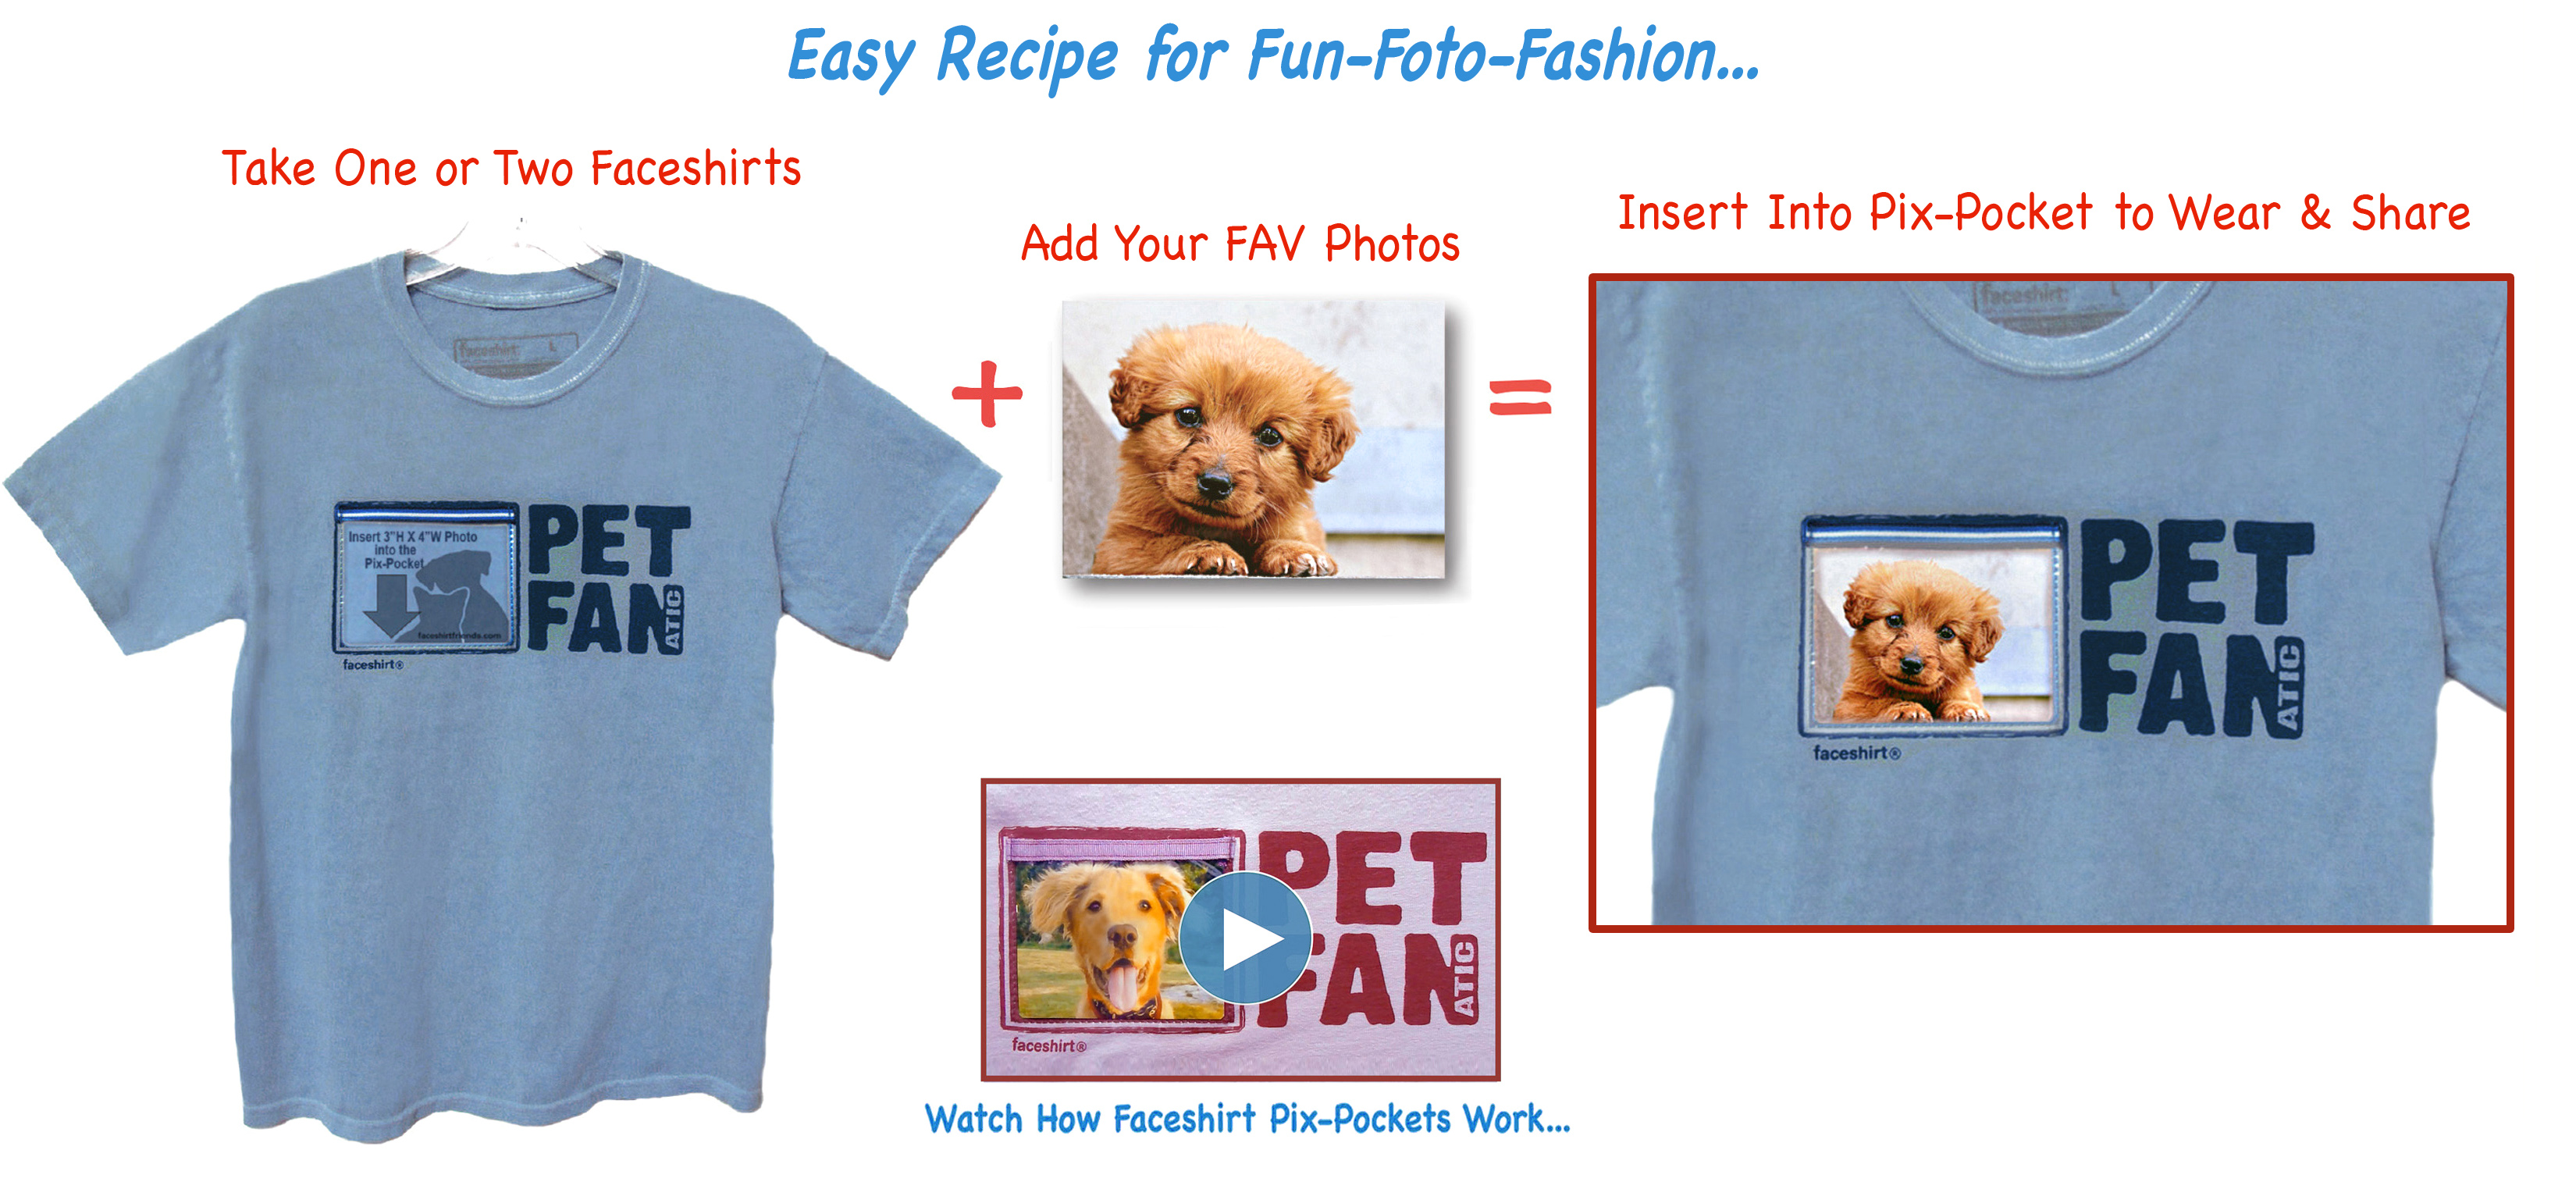 faceshirt-recipe-for-foto-fun-new-v2e.jpg